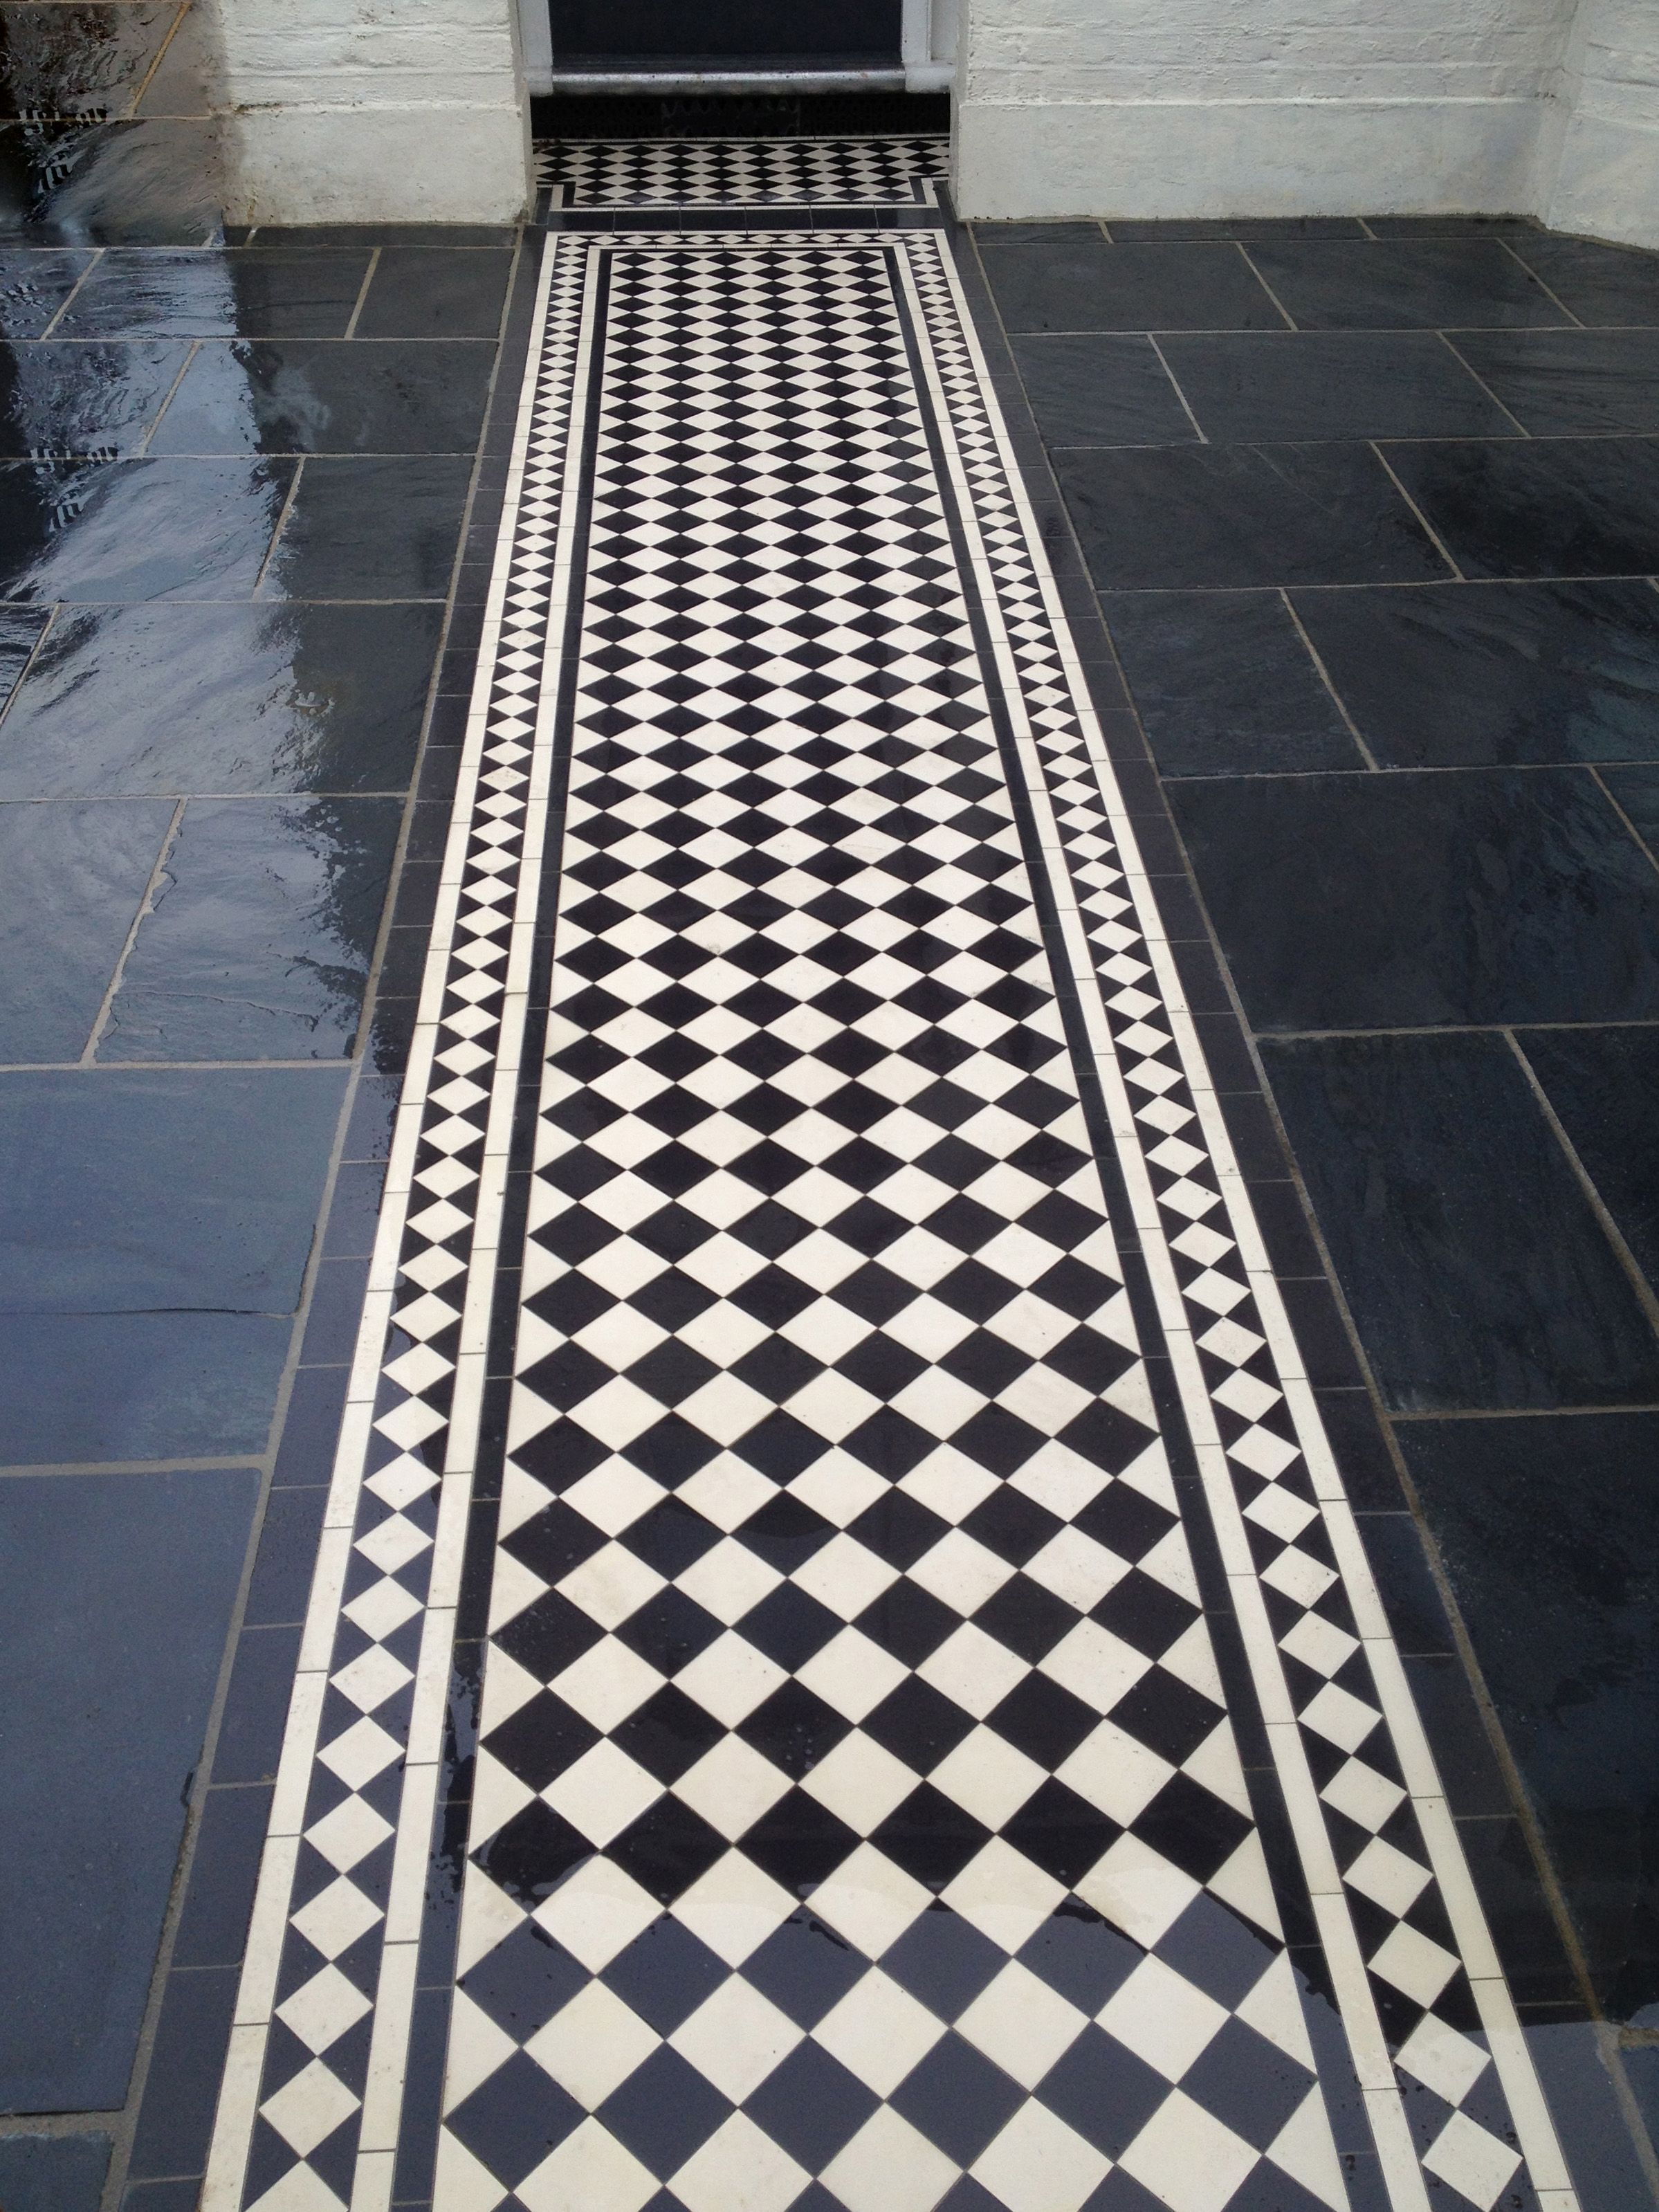 London Mosaic Our Classic Design In 50mm 70mm 100mm Tiles Victorian Pathway Monochrome Ceramic Tiles An In 2020 Floor Tile Design Ceramic Tiles Mosaic Flooring